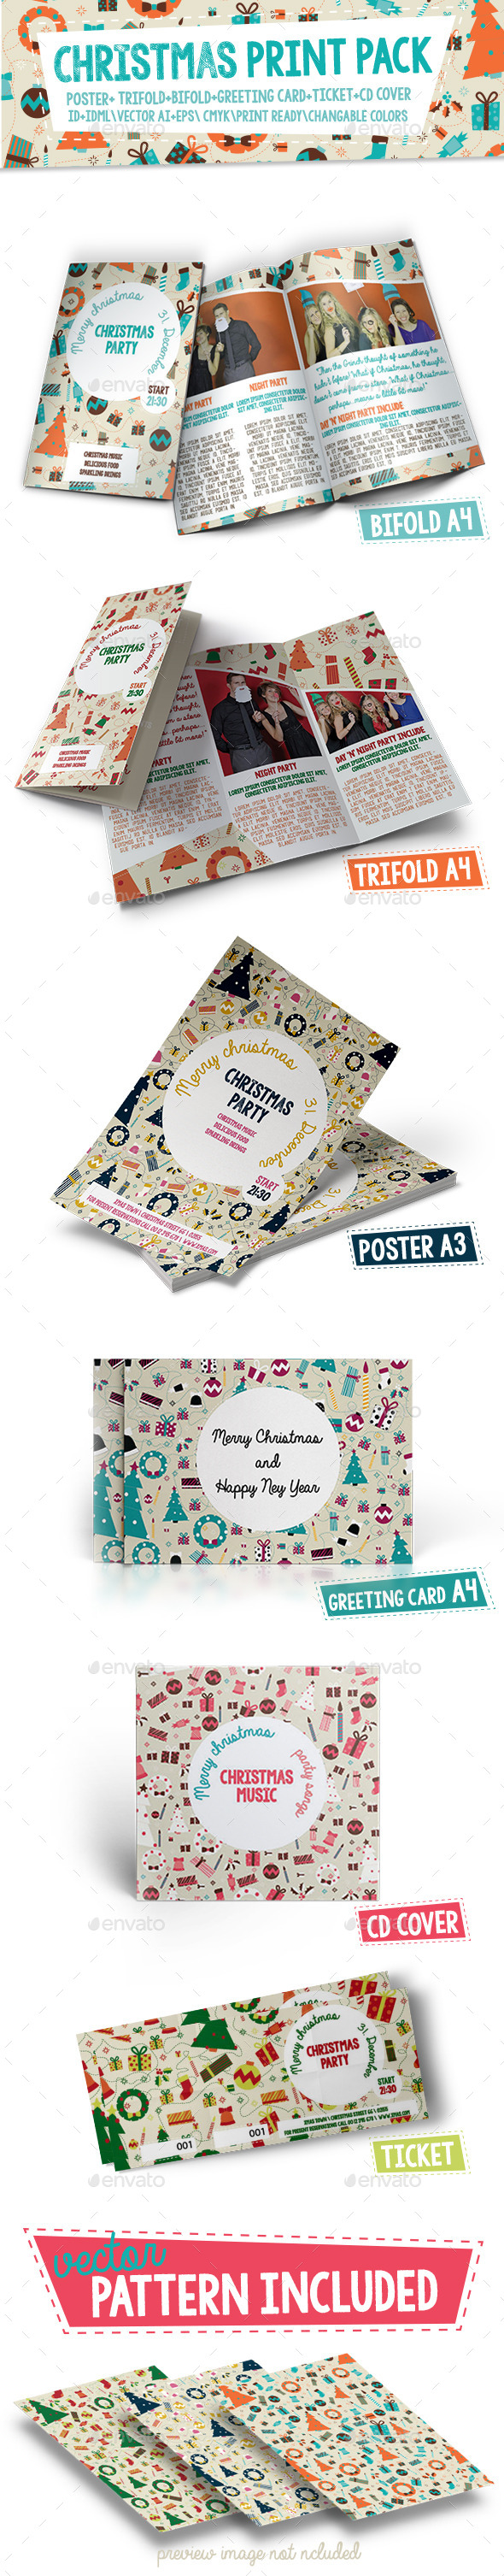 GraphicRiver Christmas Print Pack 9644112